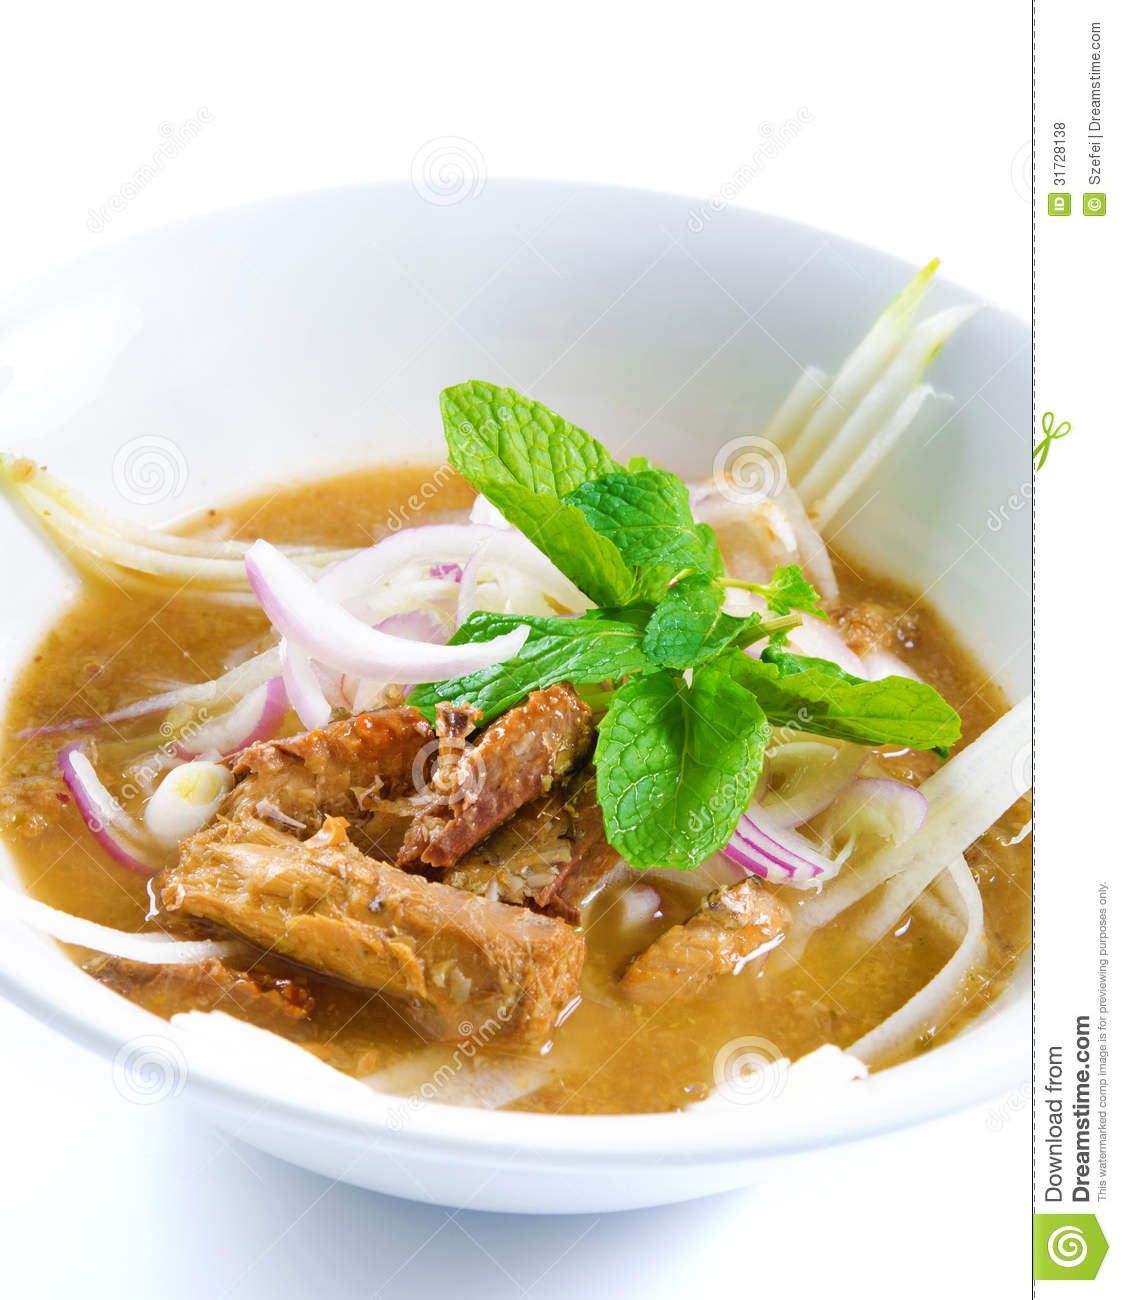 Assam laksa royalty free stock photos image 31728138 for Authentic malaysian cuisine